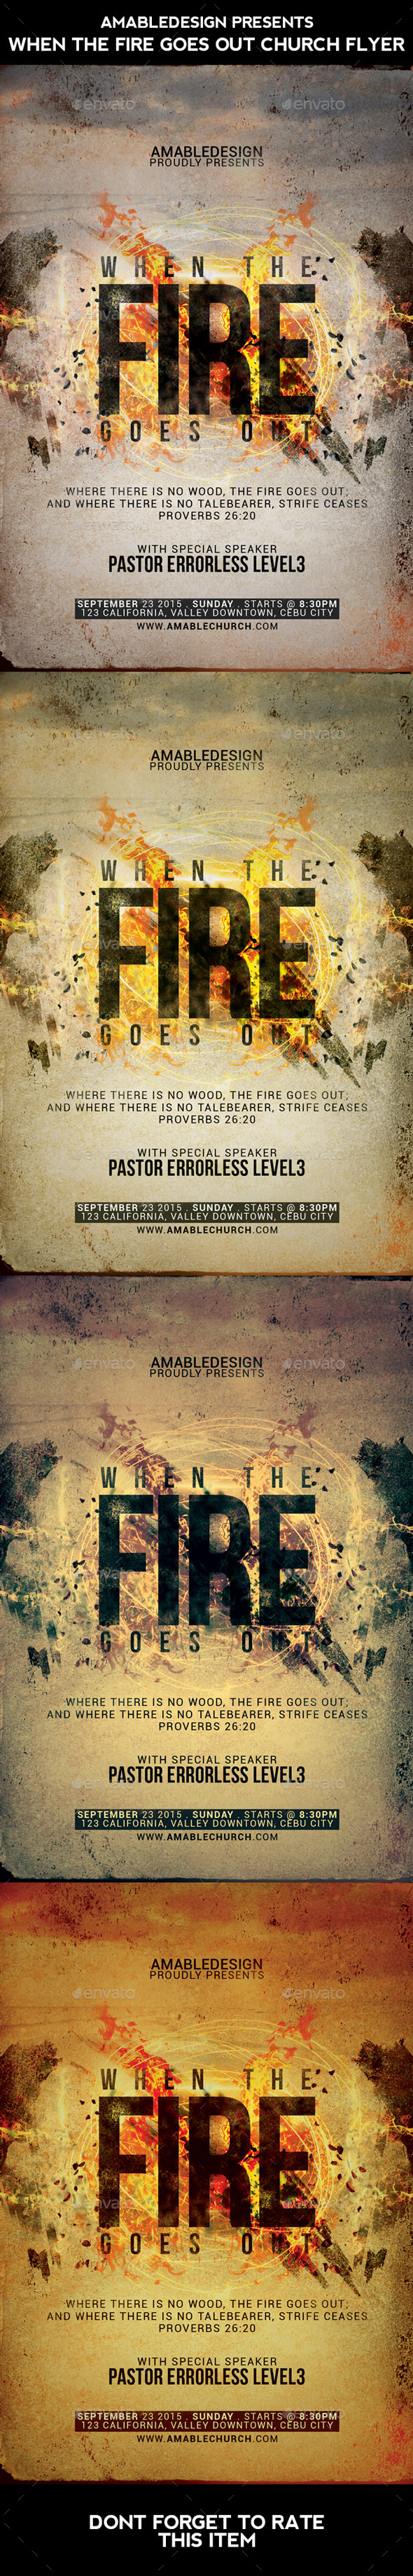 When the Fire Goes Out Church Flyer - Church Flyers